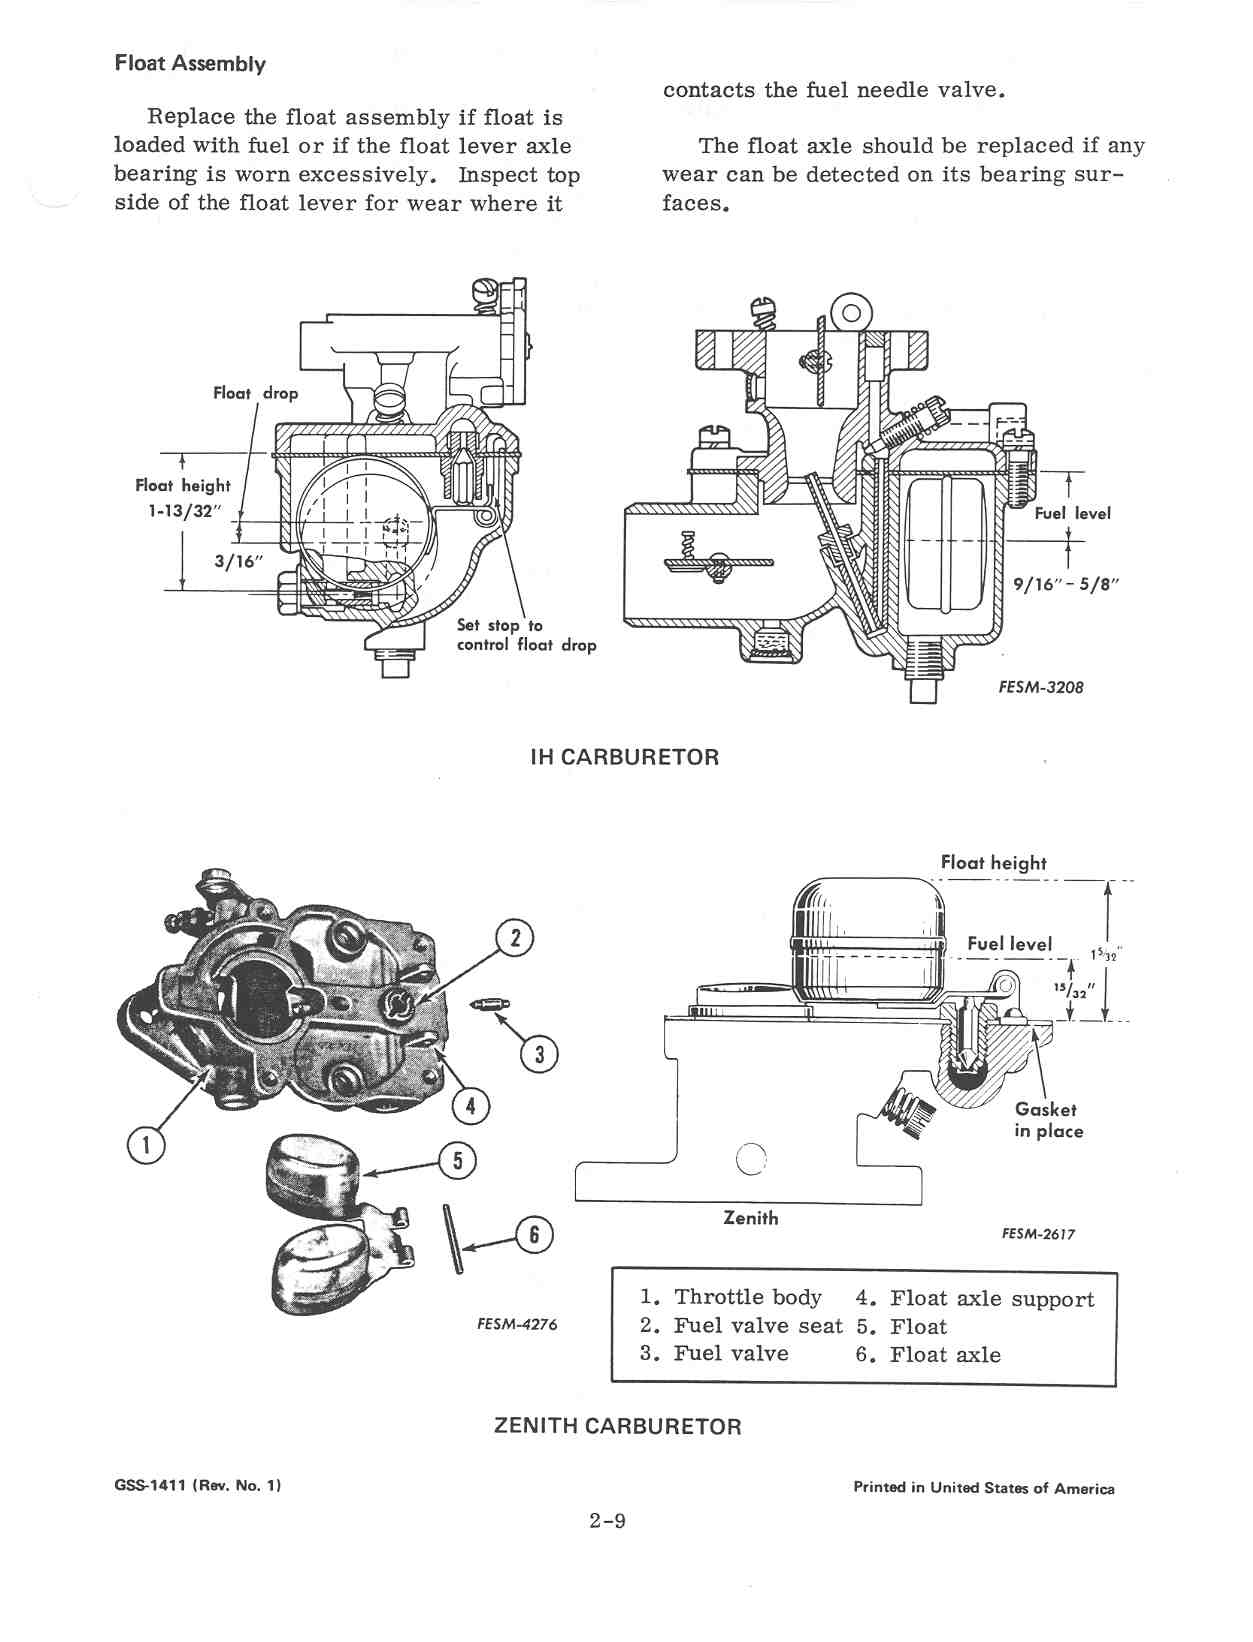 [DIAGRAM] Ihc Farmall 300 Wiring Diagram FULL Version HD